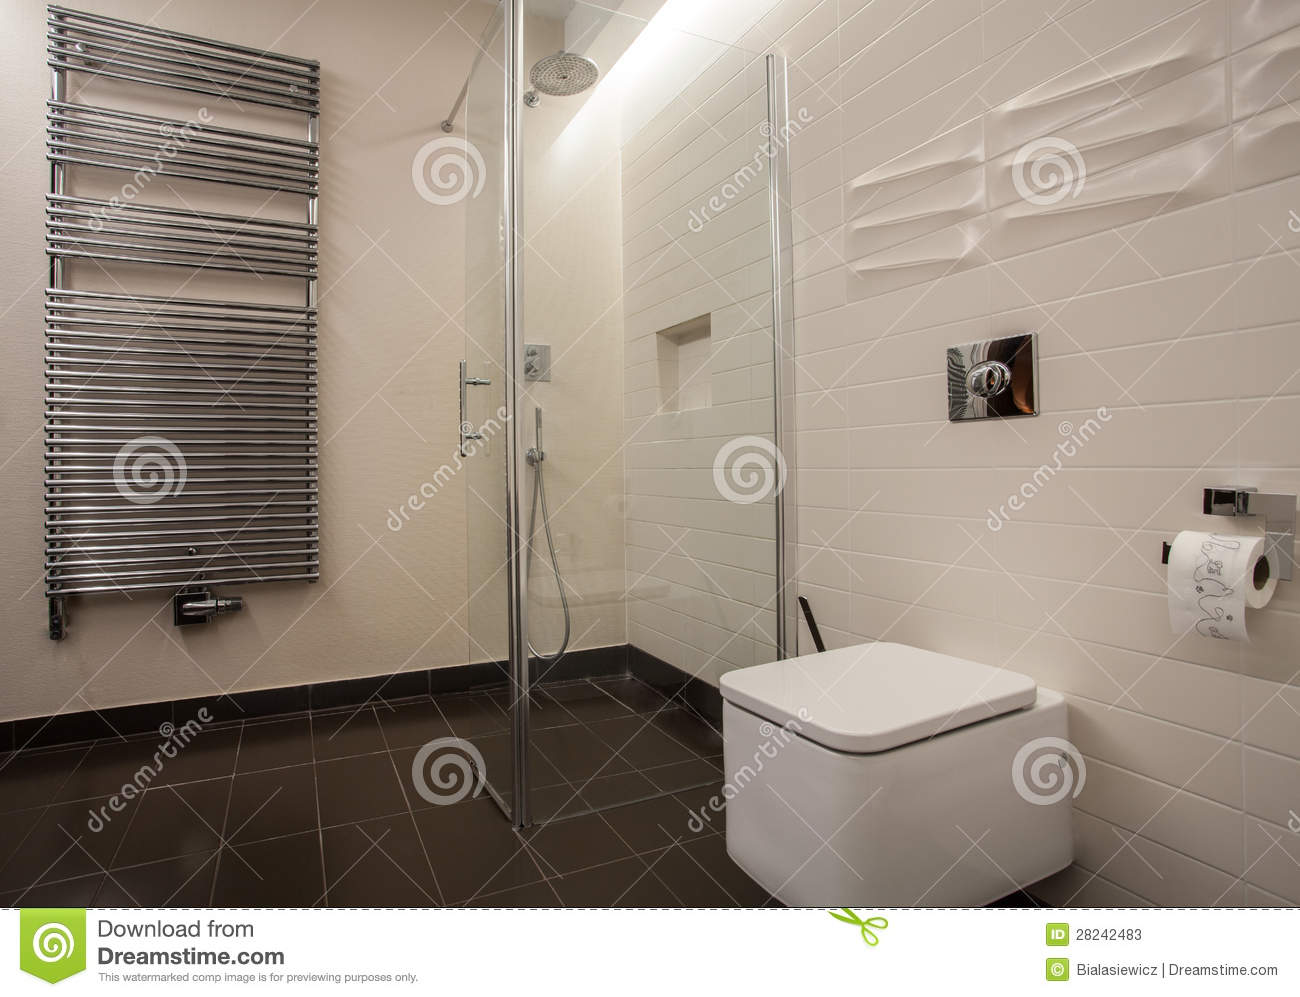 Salle de bain travertin moderne – lombards